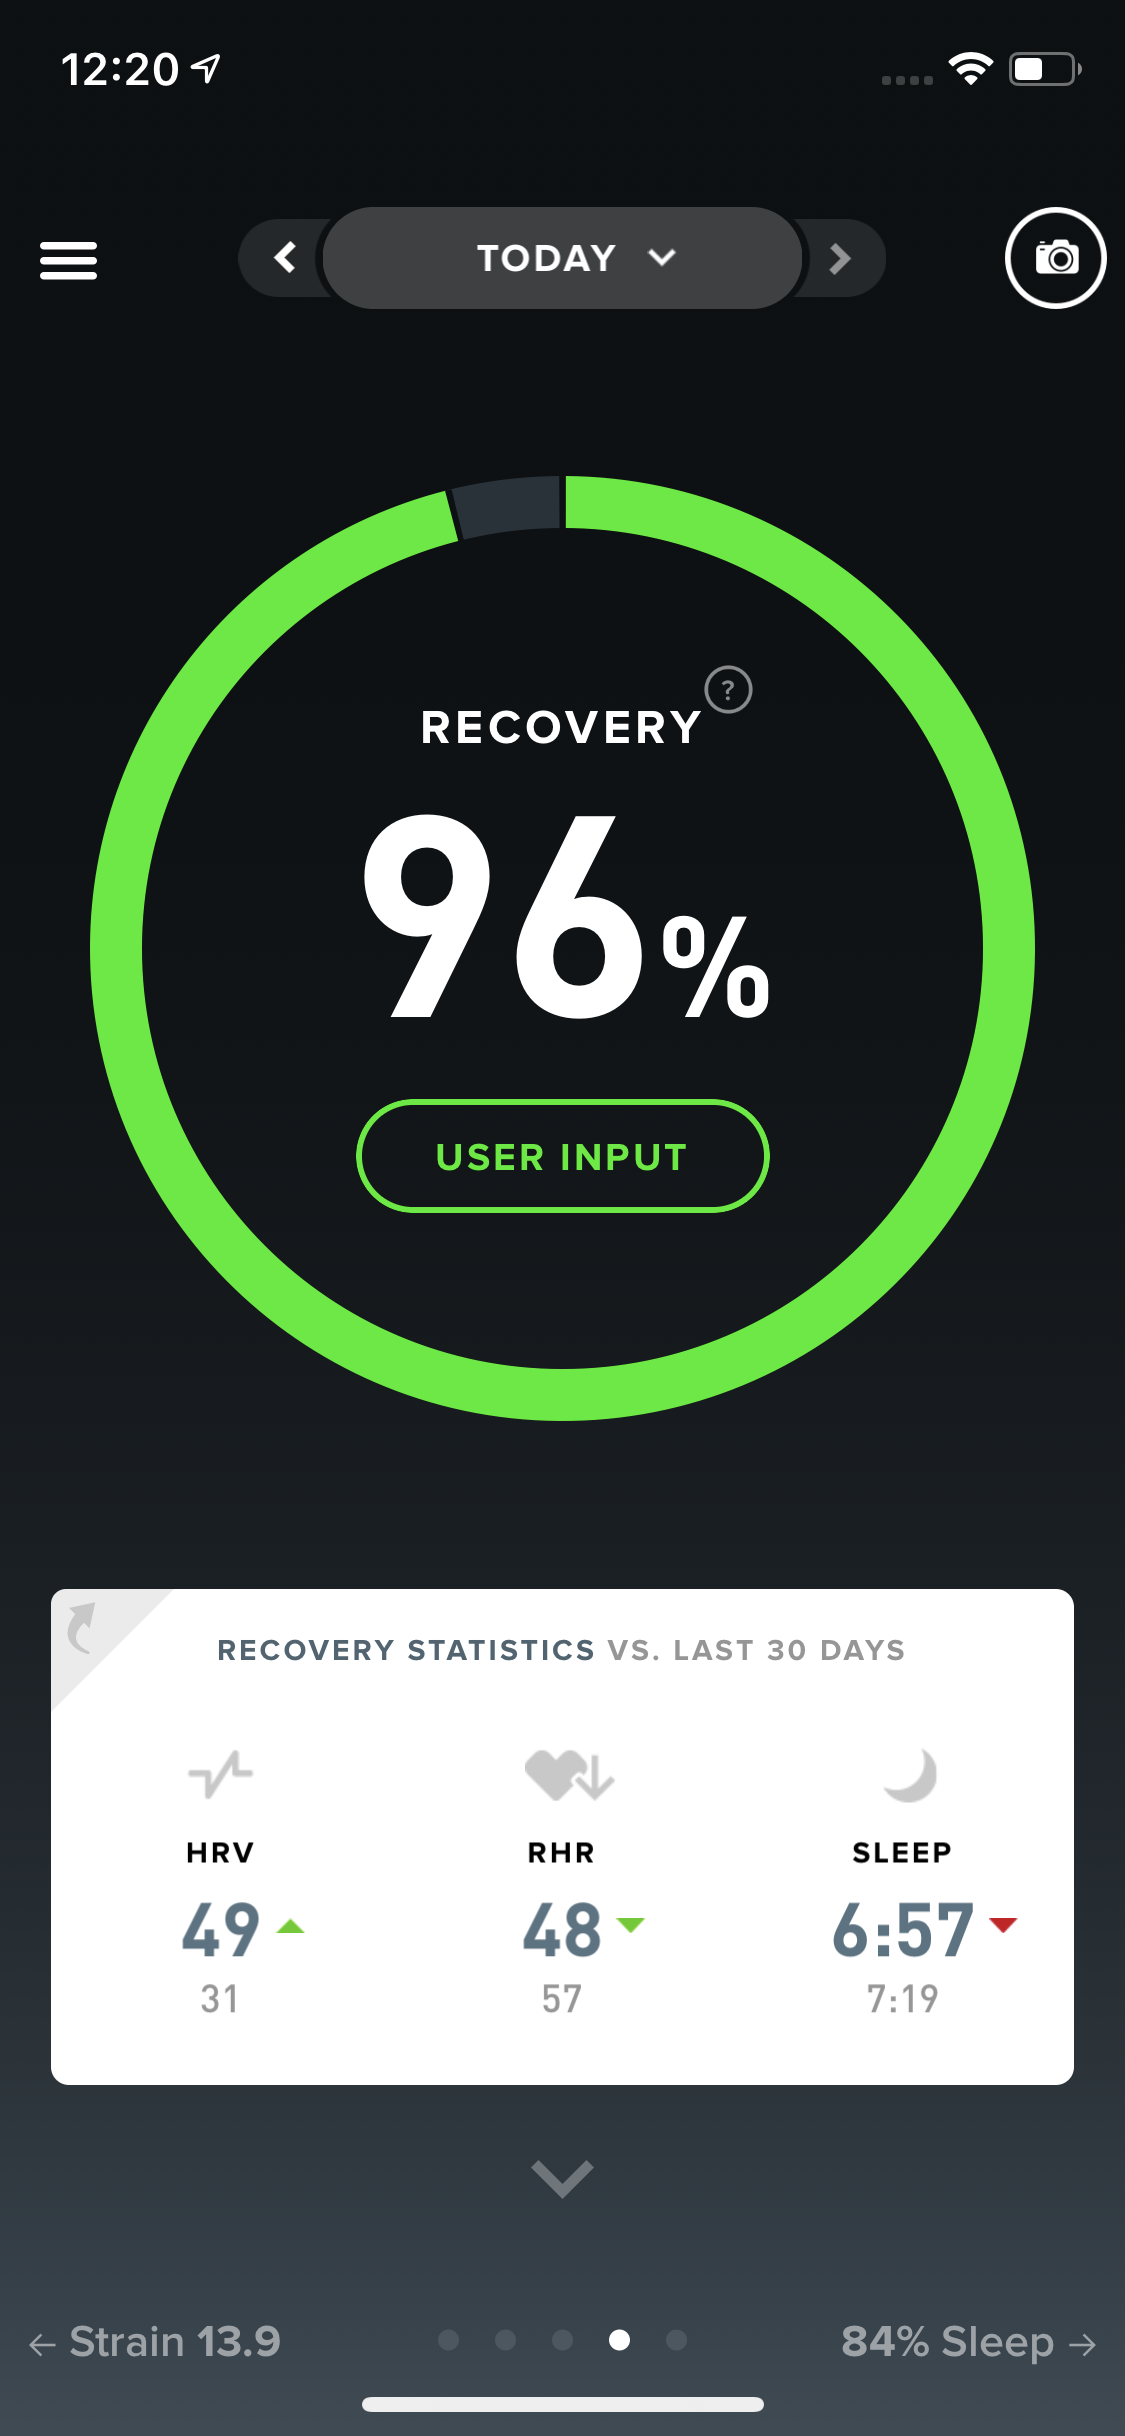 Morning recovery score based on amount/quality of sleep, HRV and RHR.